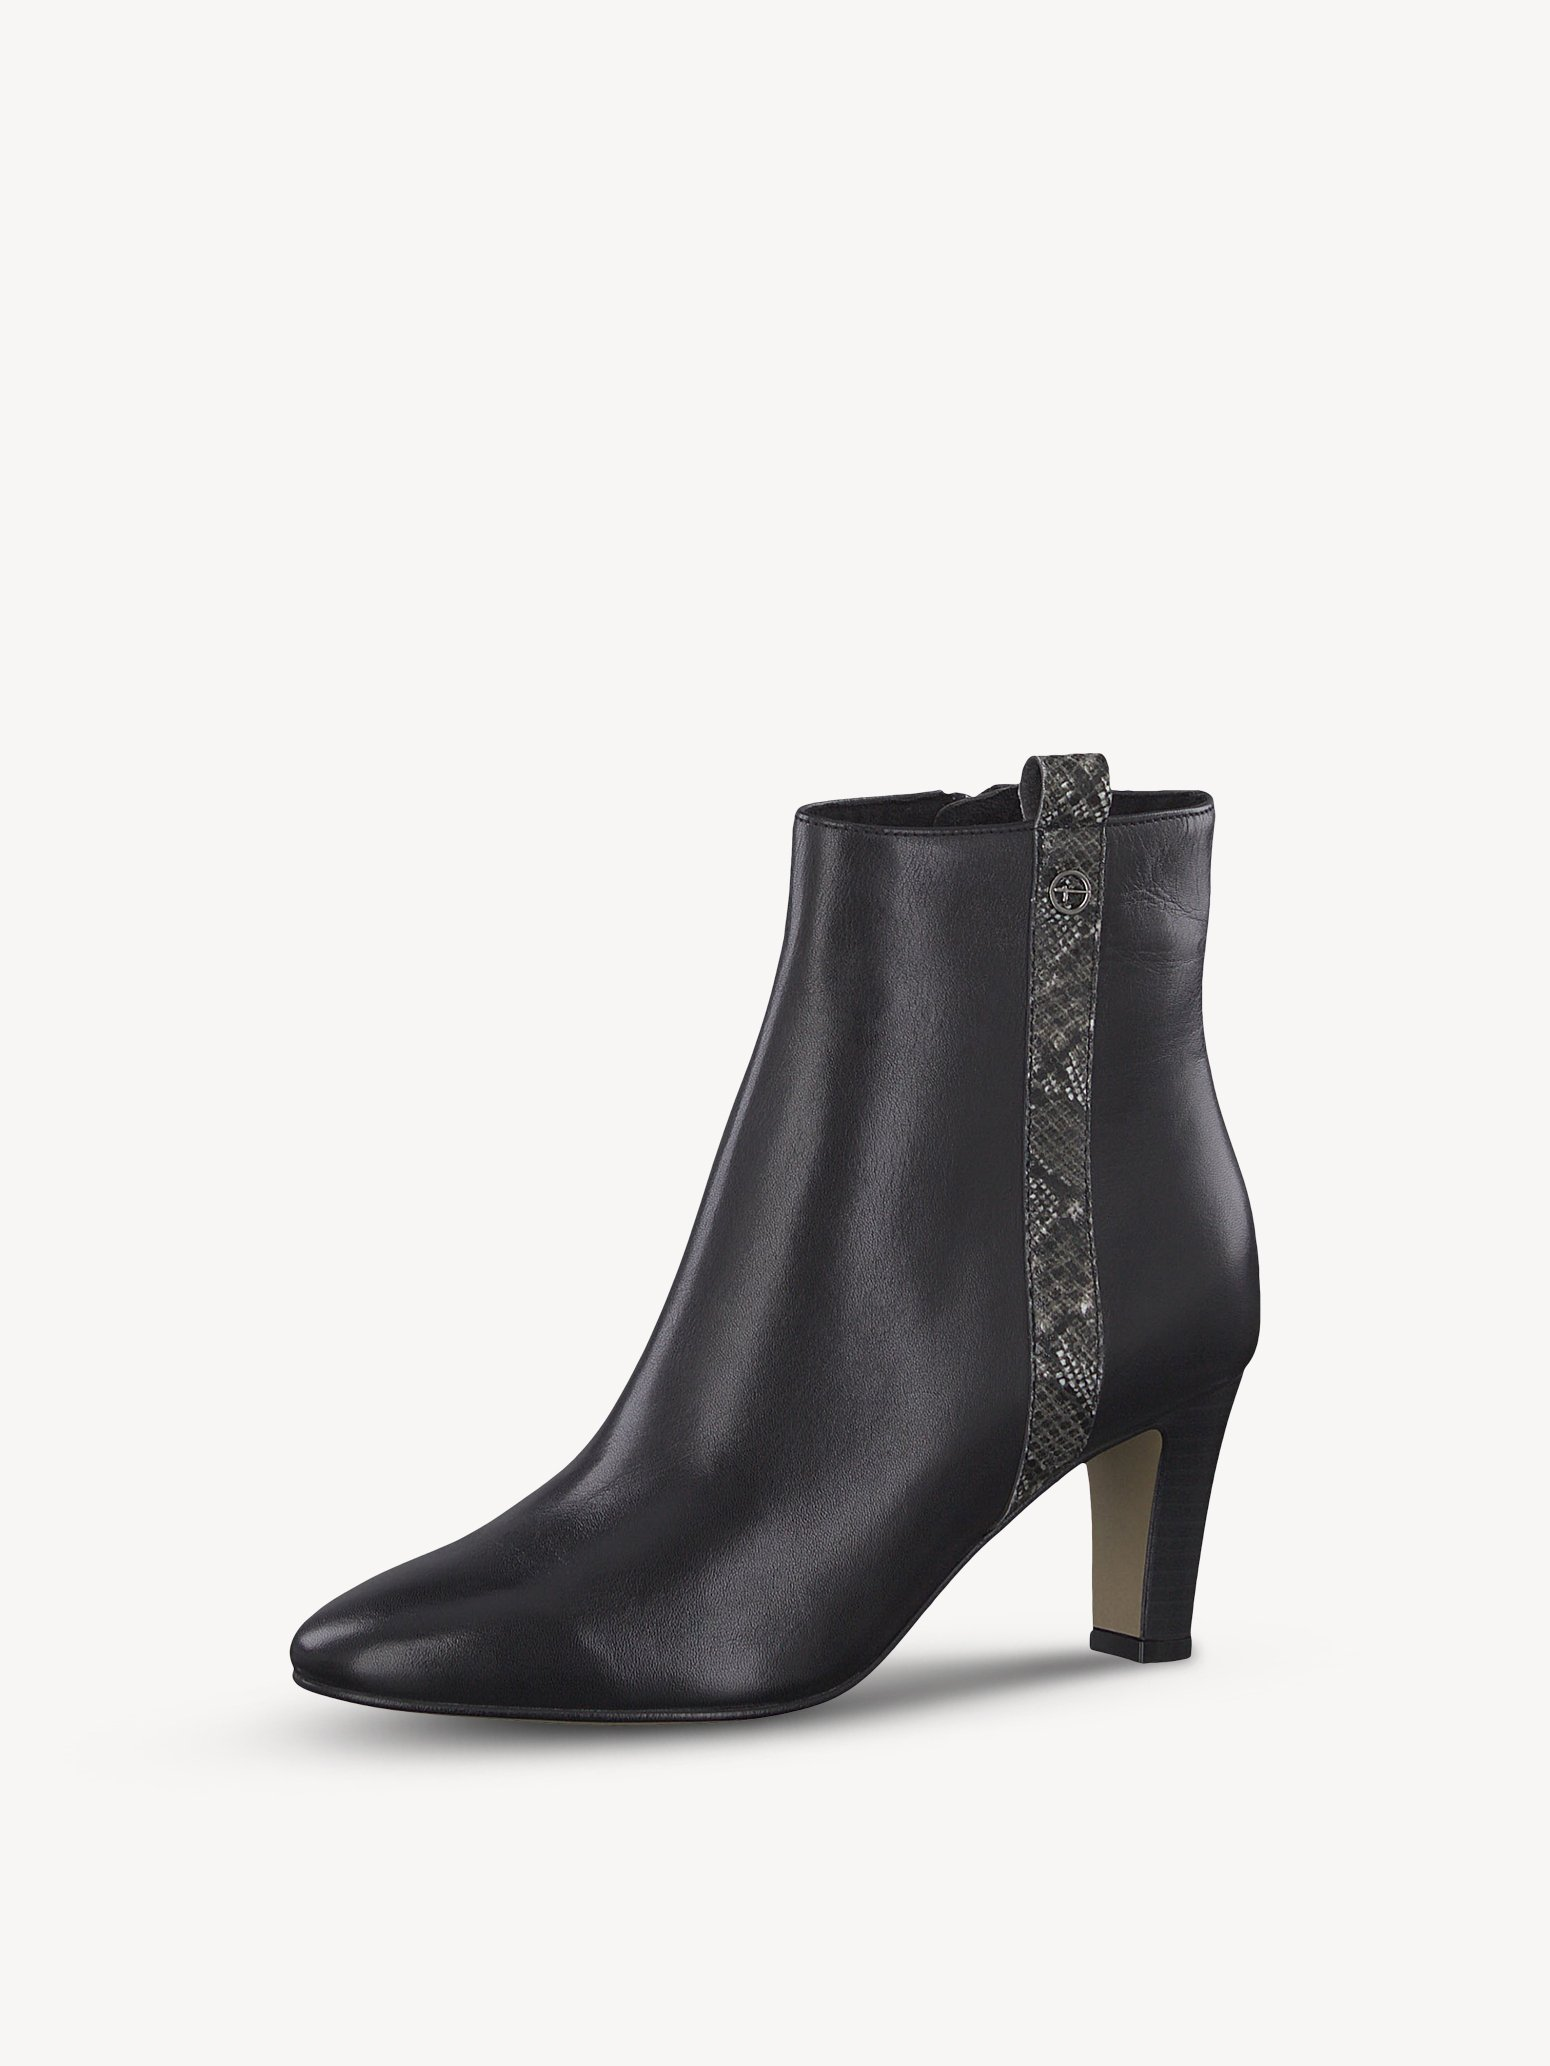 Leather Bootie - black, BLACK/SNAKE, hi-res